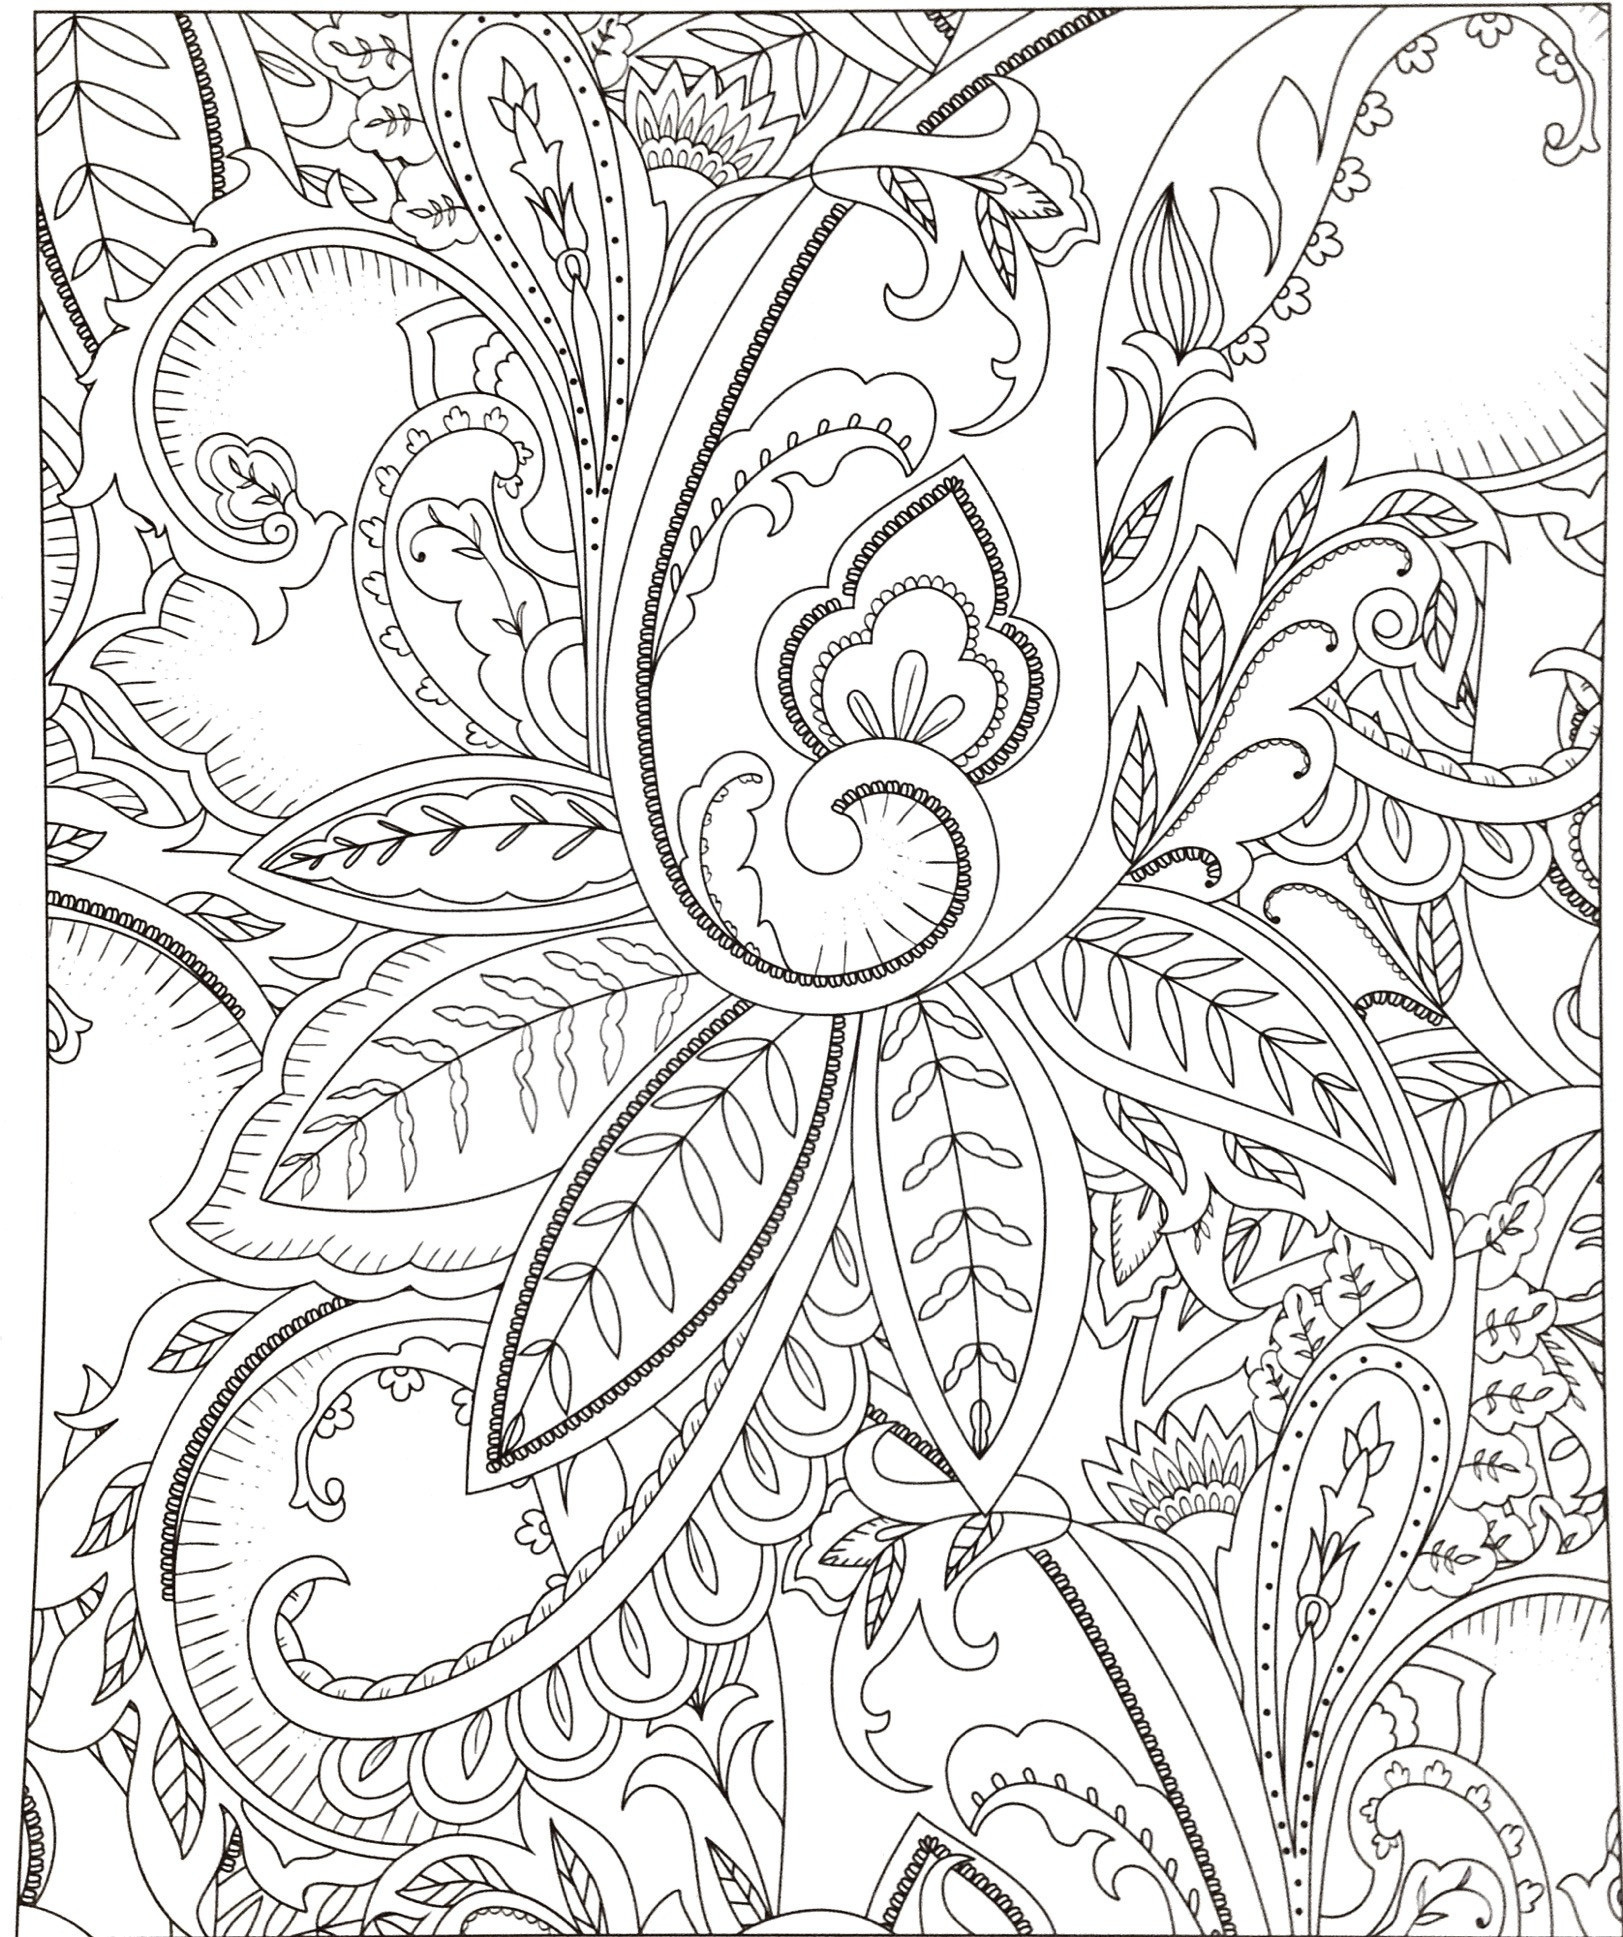 labor day coloring pages Download-Family Coloring Pages Fabulous Labor Day Coloring Pages Letramac 7-e